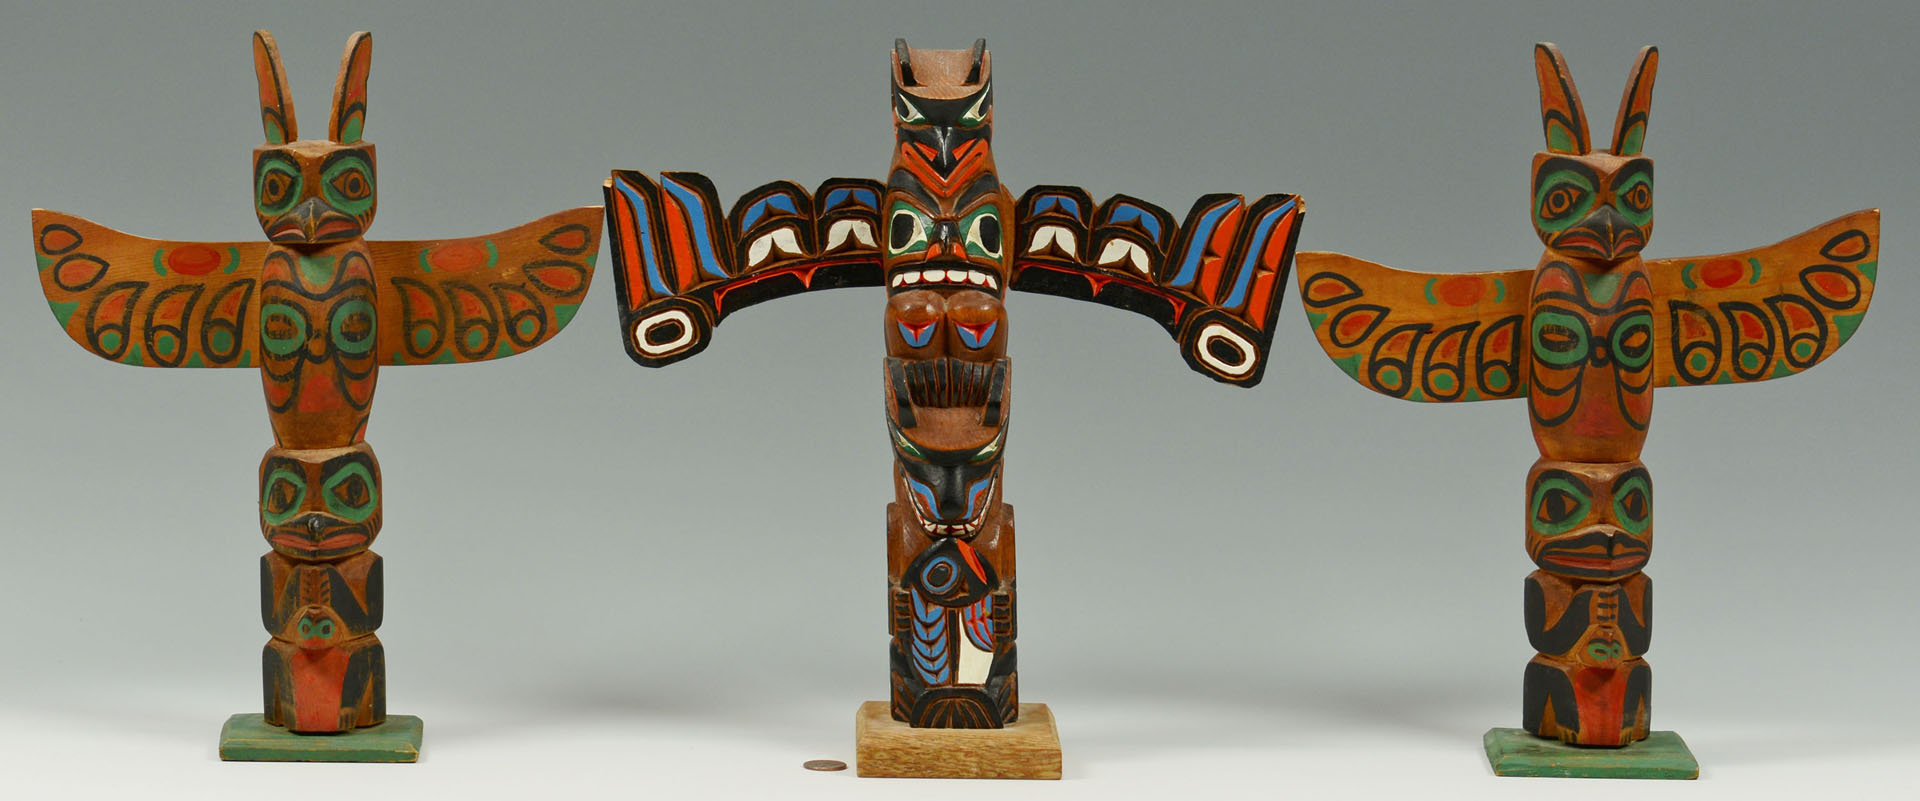 3 NW Native American Totems, 1 by Marlin Alphonse